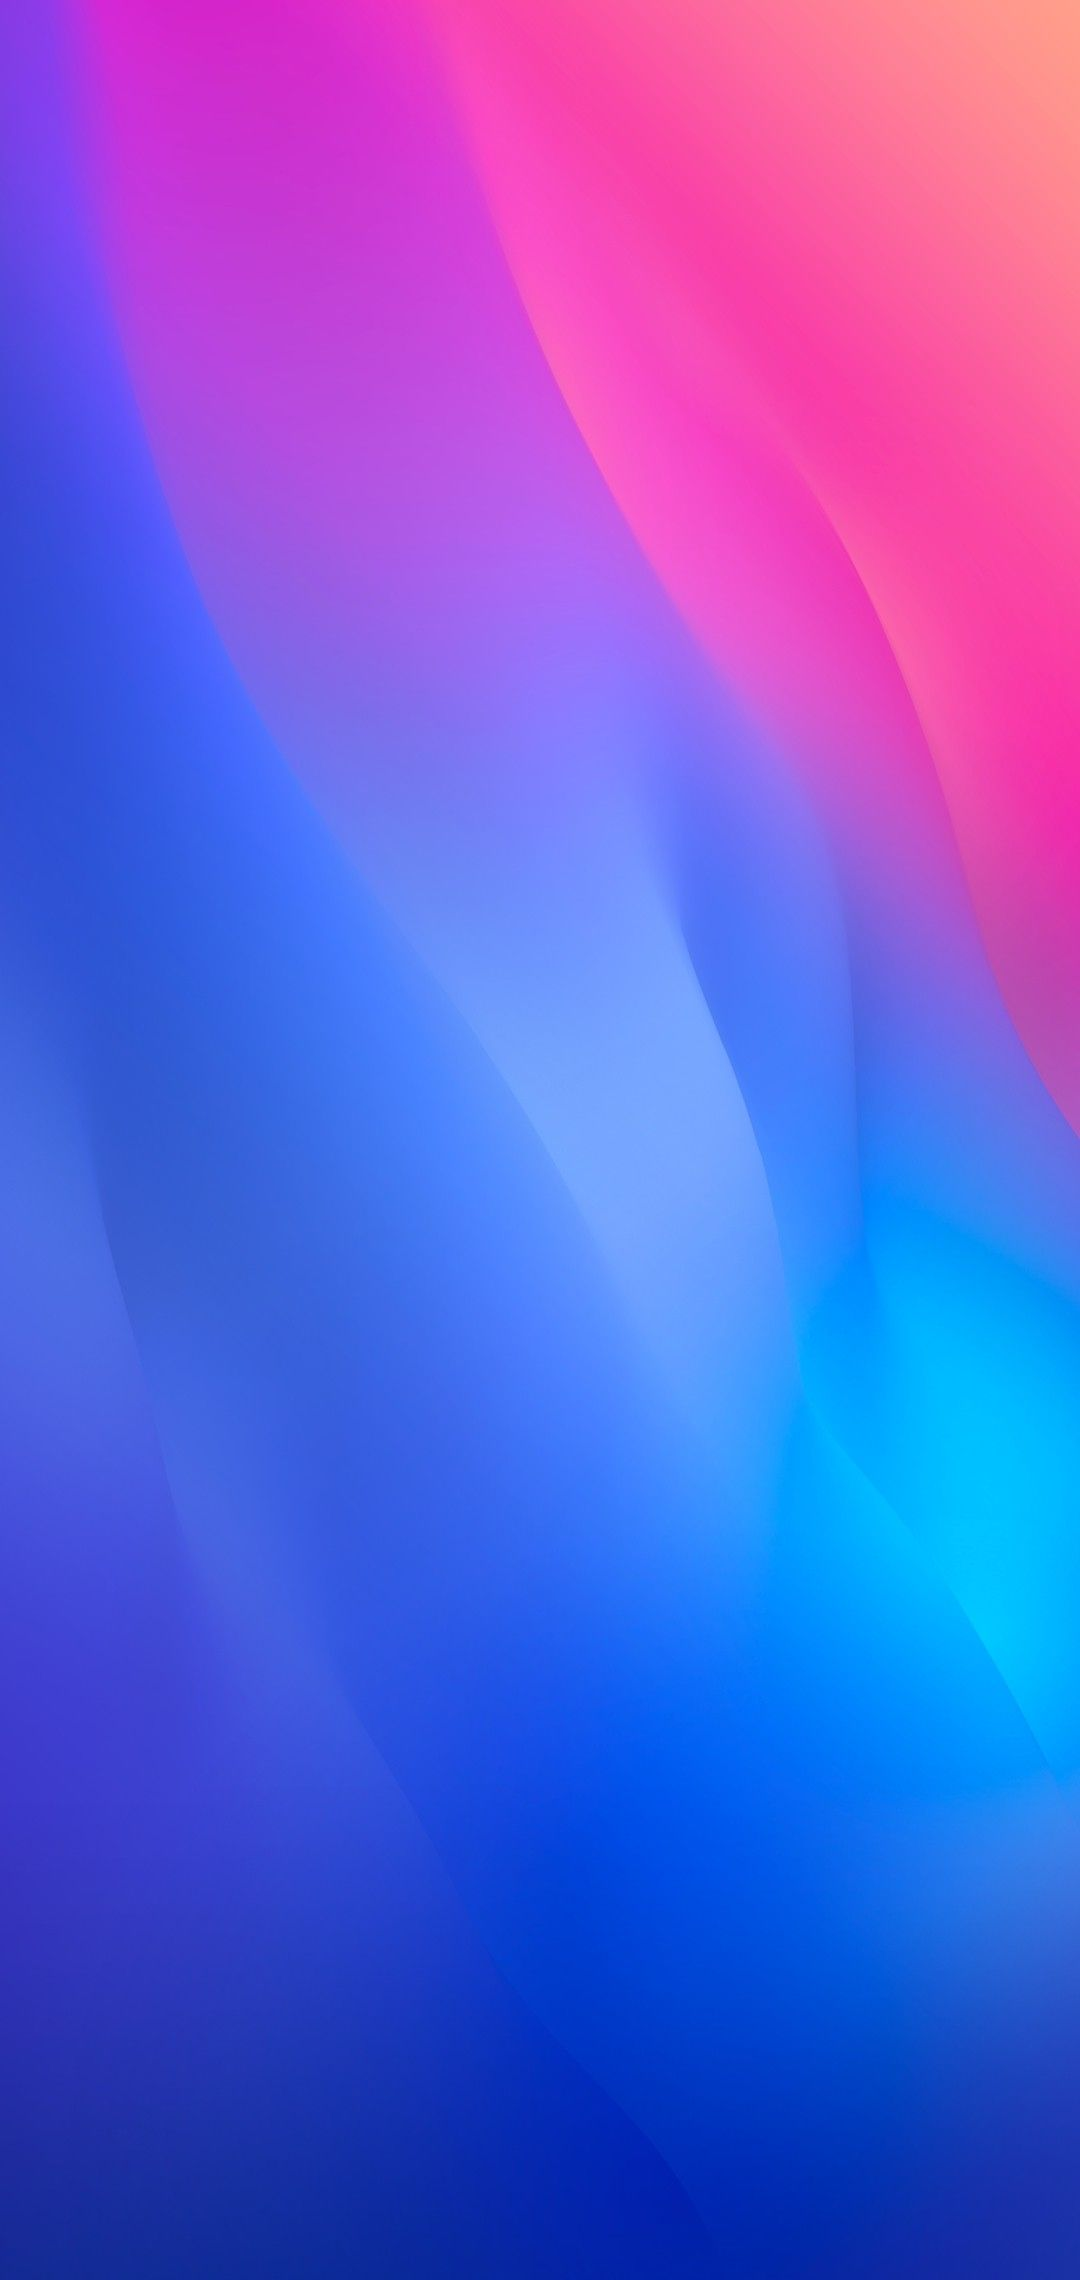 download iOS 12 iPhone X blue pink clean simple abstract 1080x2280